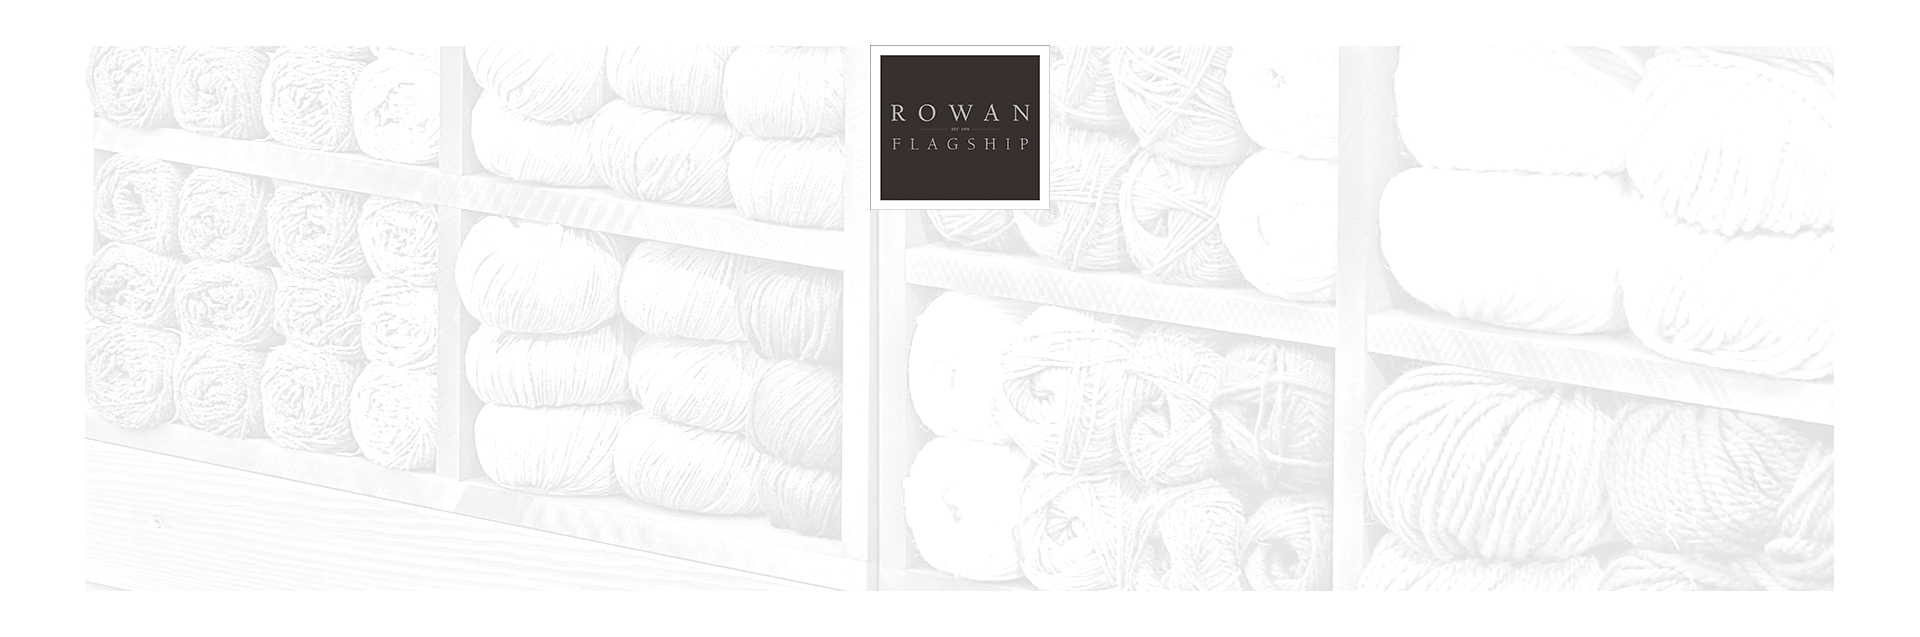 Woolwinders is a full service knitting boutique with two locations in Maryland: Rockville and Annapolis. In the Fall of 2018, both shops were designated as Rowan Flagship stores. Woolwinders specializes in all-natural traditional yarns and Rowan is the perfect match for our shops.